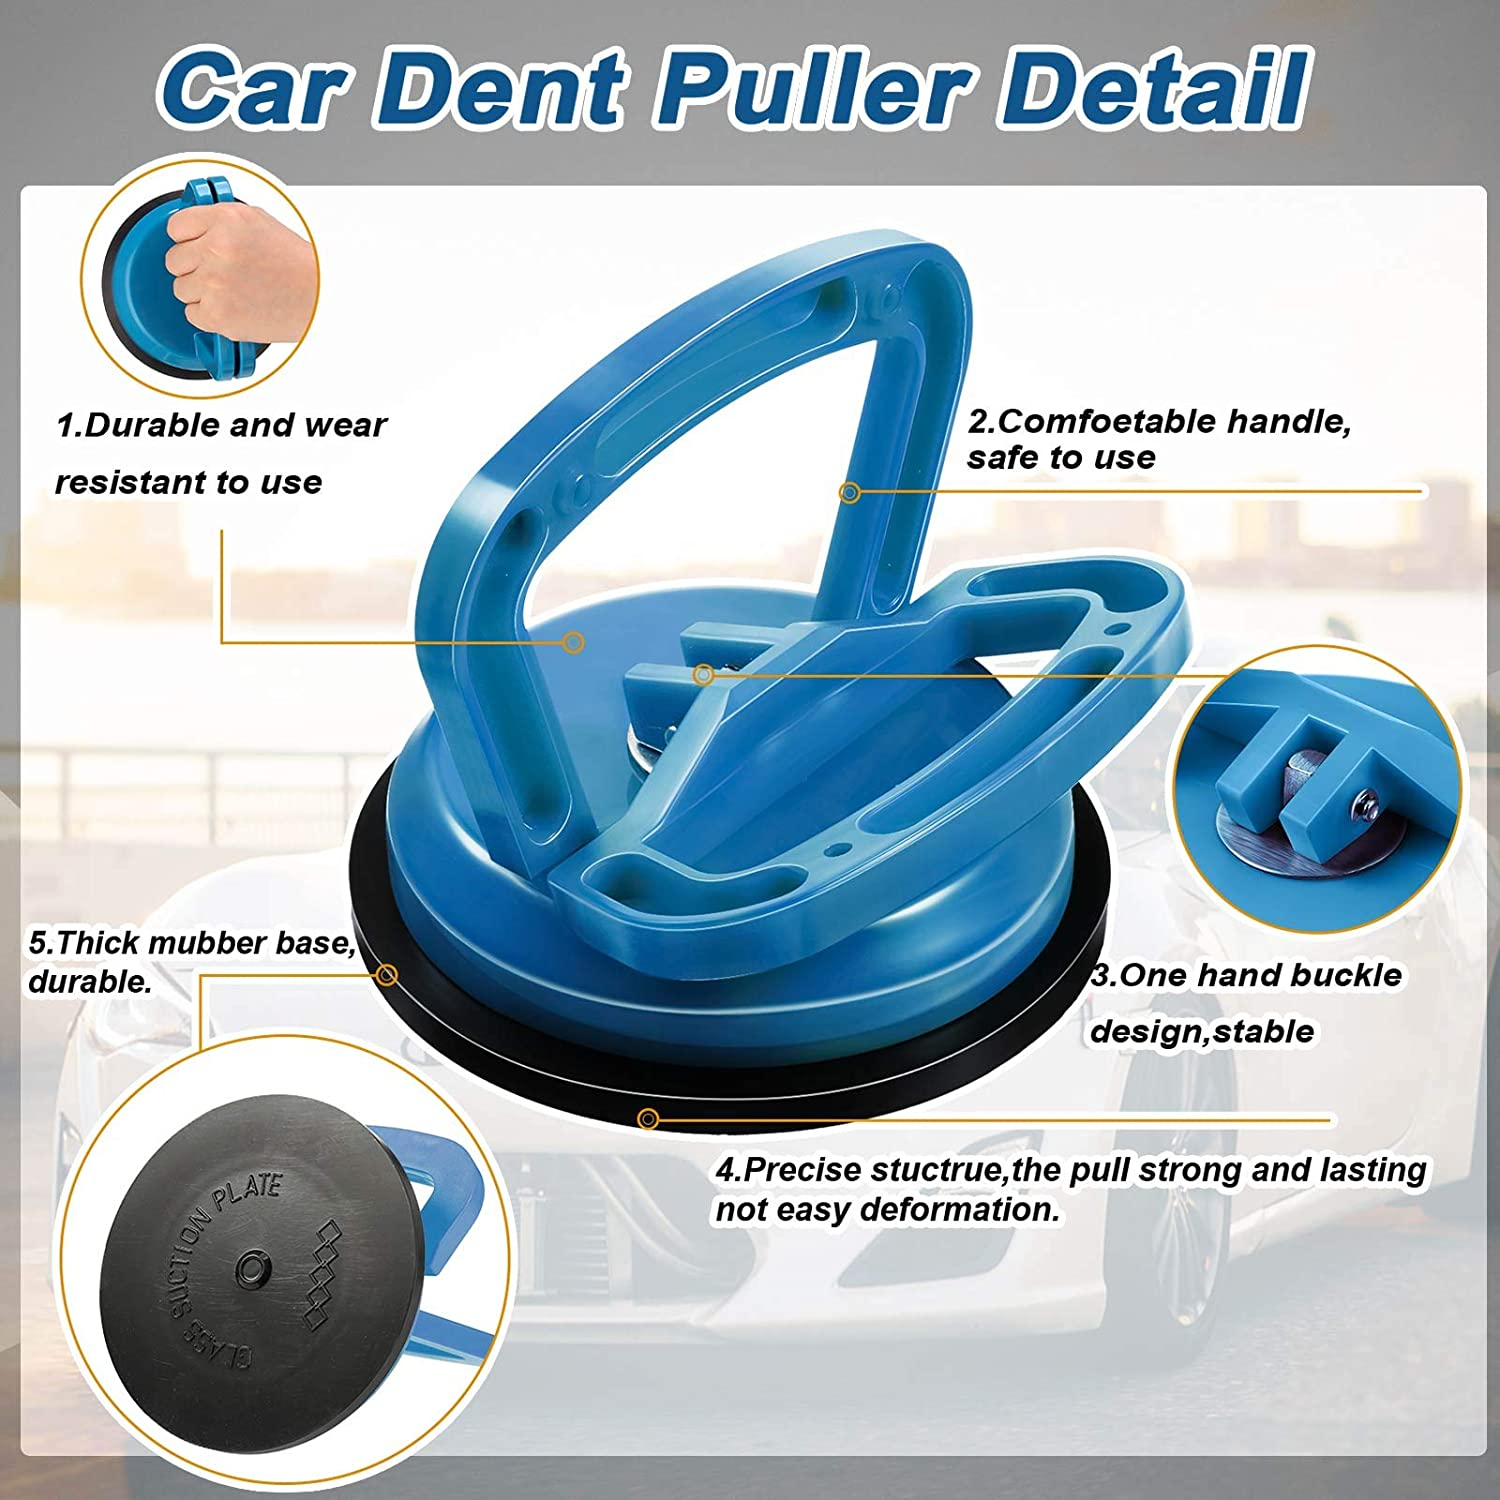 Moving Glass Tiles Mirror Granite Lifting Black 2 Pieces 4.7 Inch Car Dent Puller Remover Suction Cups Car Dent Puller Handle Lifters Car Dent Pullers for Repairing Cars